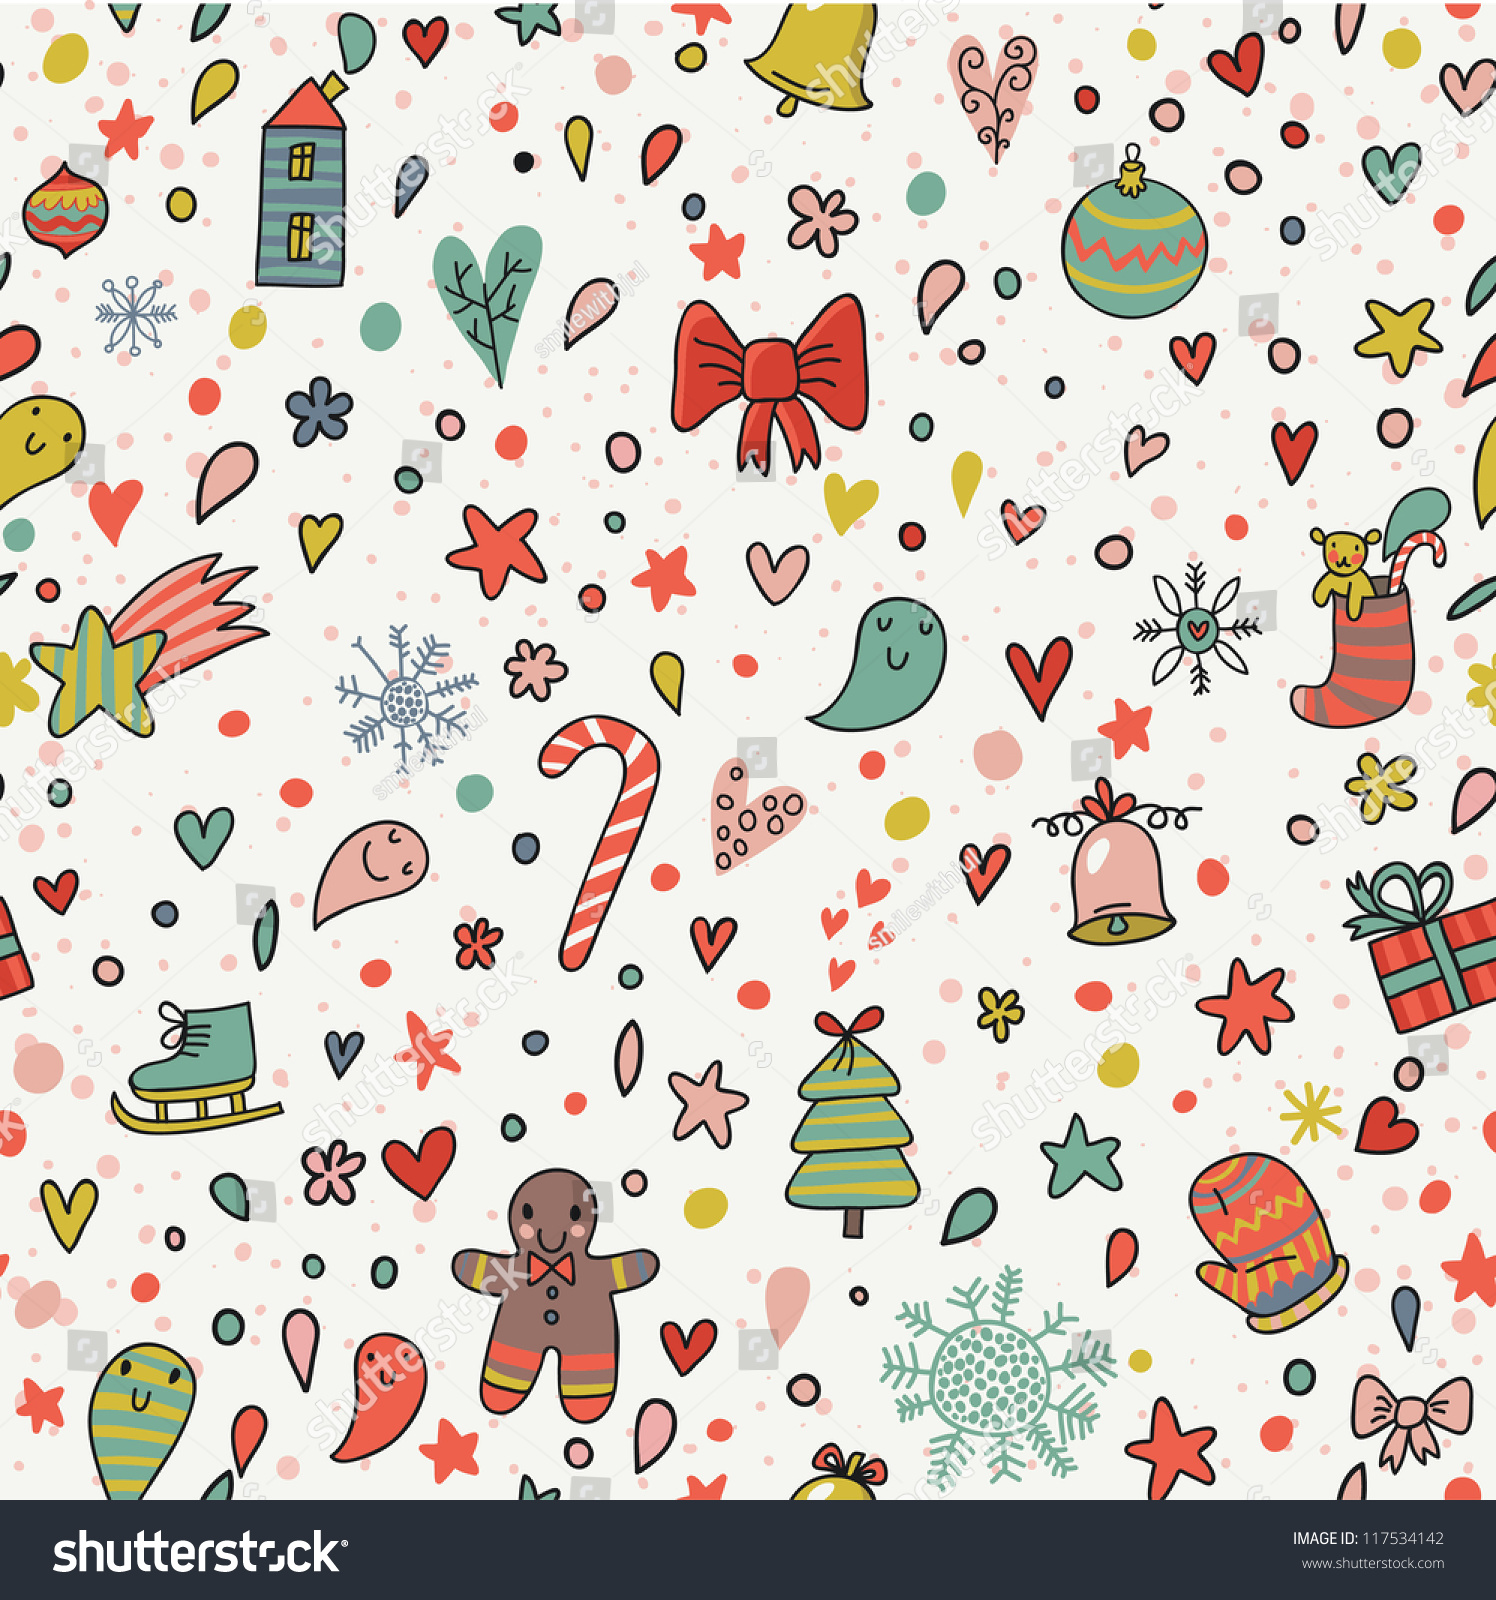 cute cartoon holiday wallpaper - photo #35